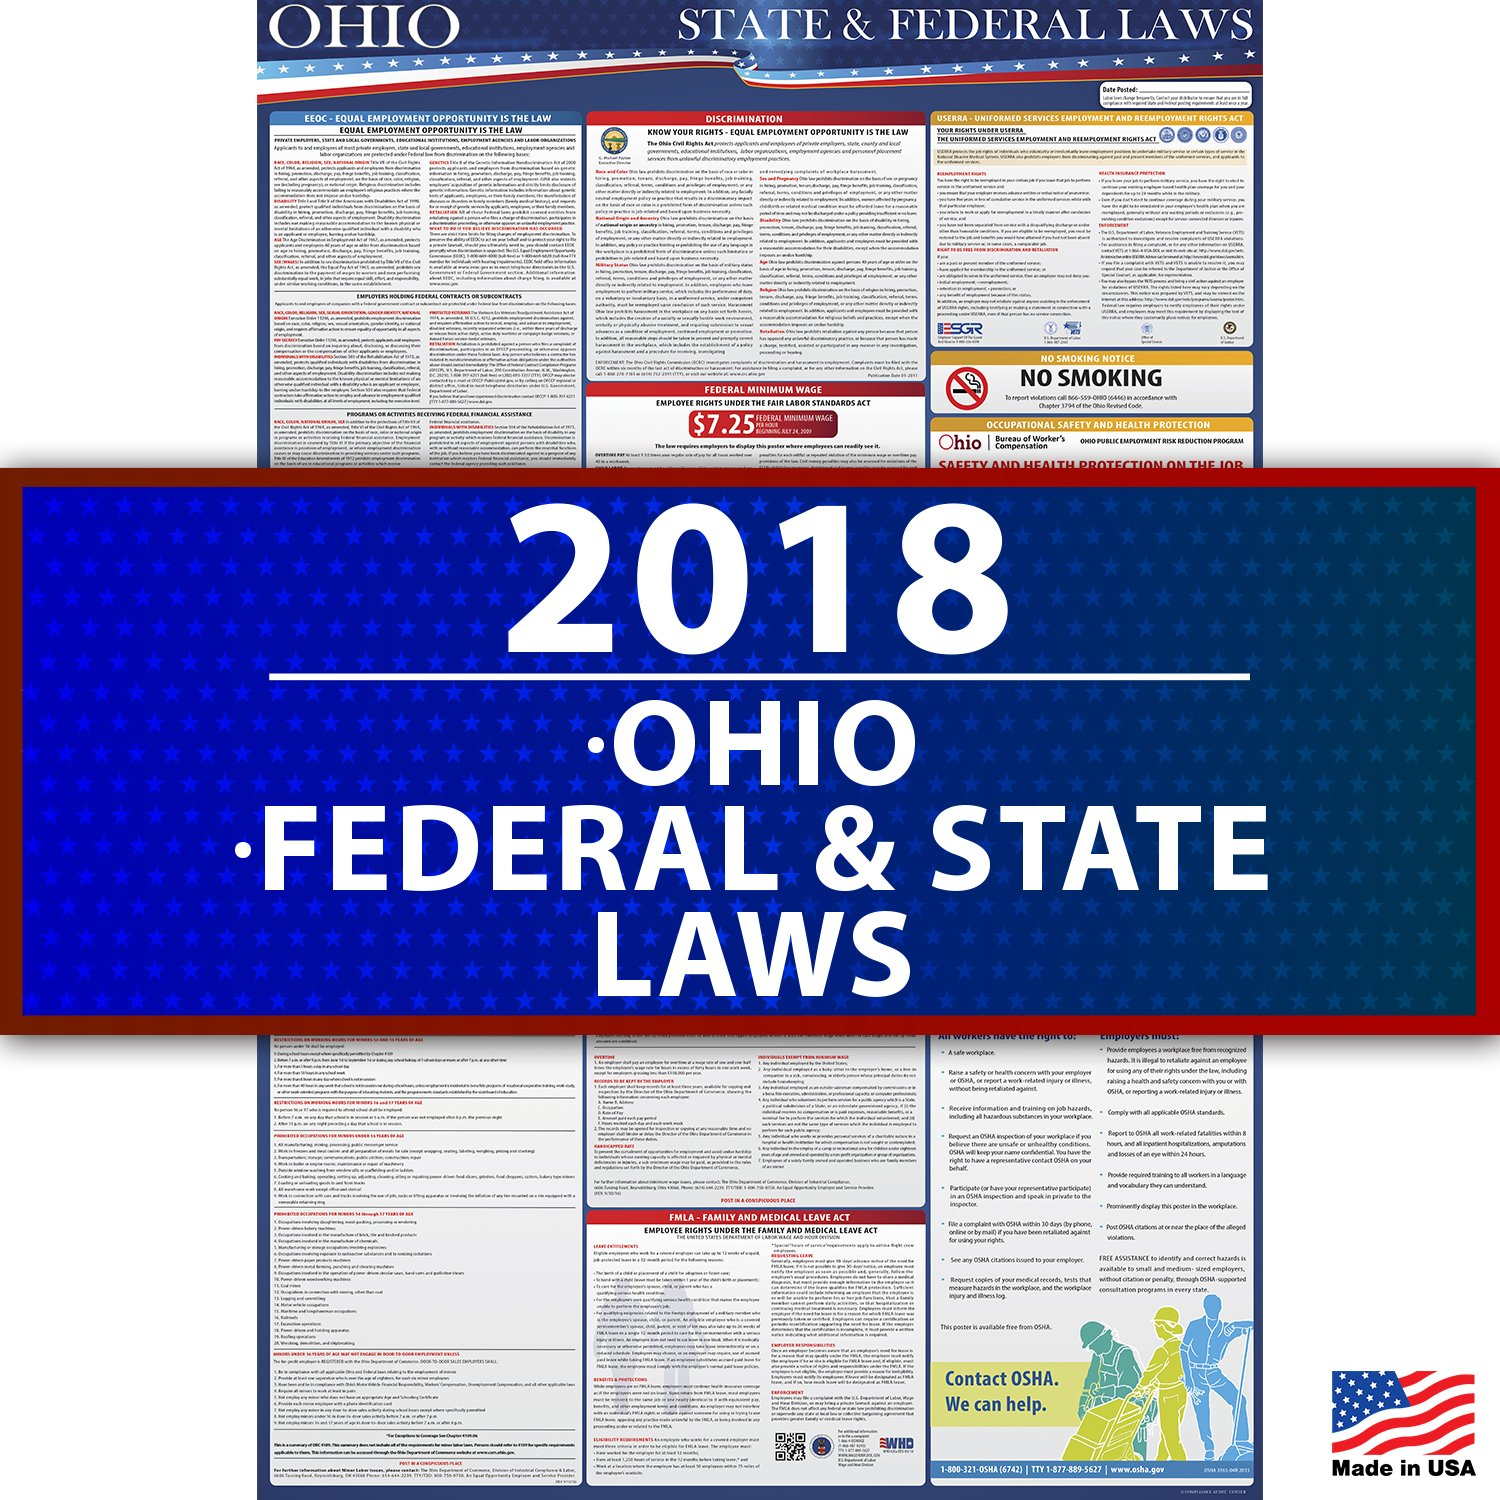 "2018 Ohio State and Federal Labor Law Poster - UV Coated 36"" x 24"" - Osha Compliant Compliance Audit Center OH2"